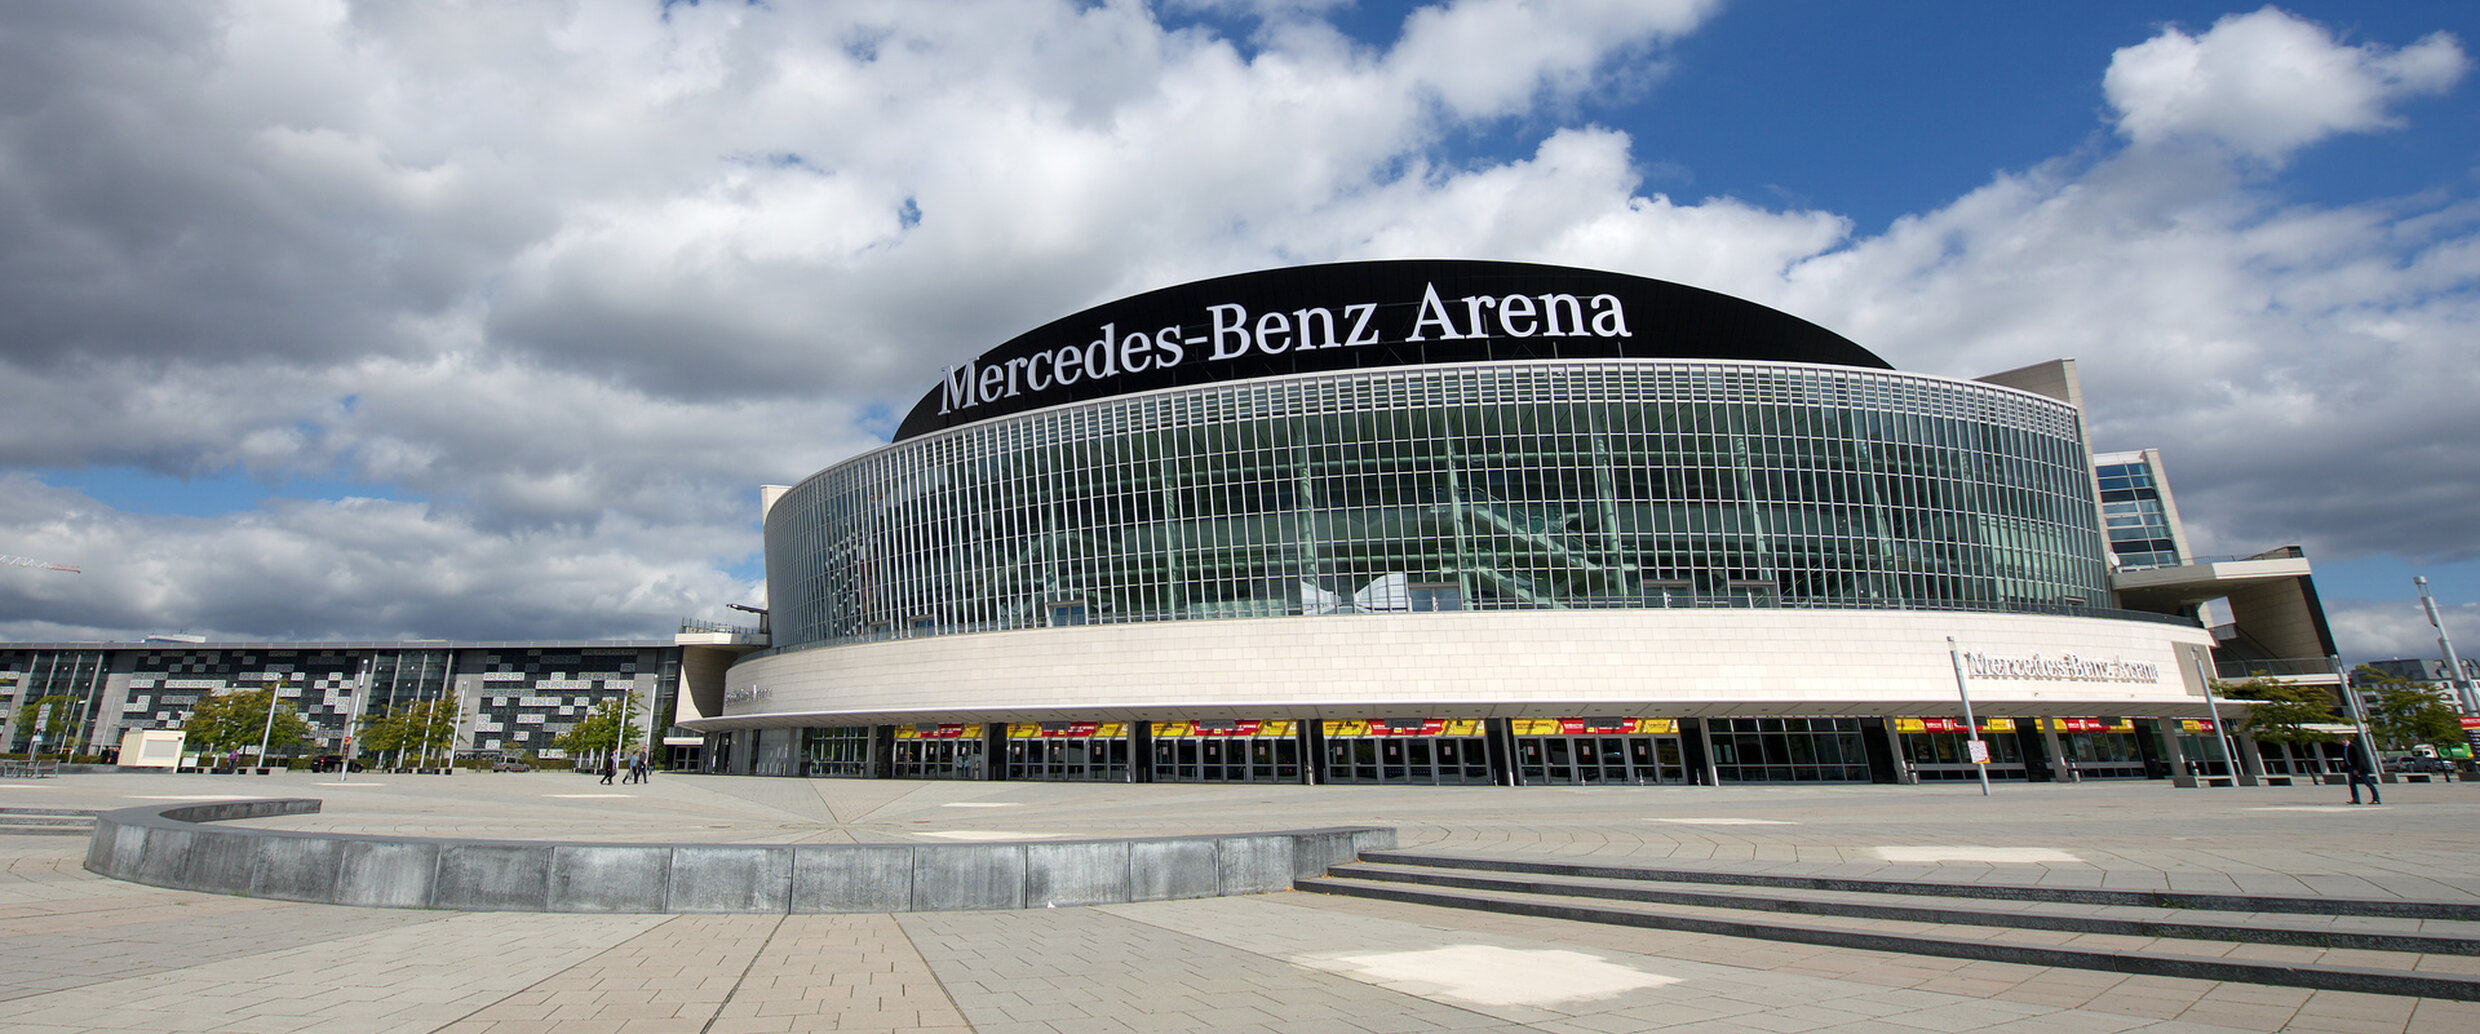 veranstaltungen mercedes benz arena berlin auto bild idee. Black Bedroom Furniture Sets. Home Design Ideas